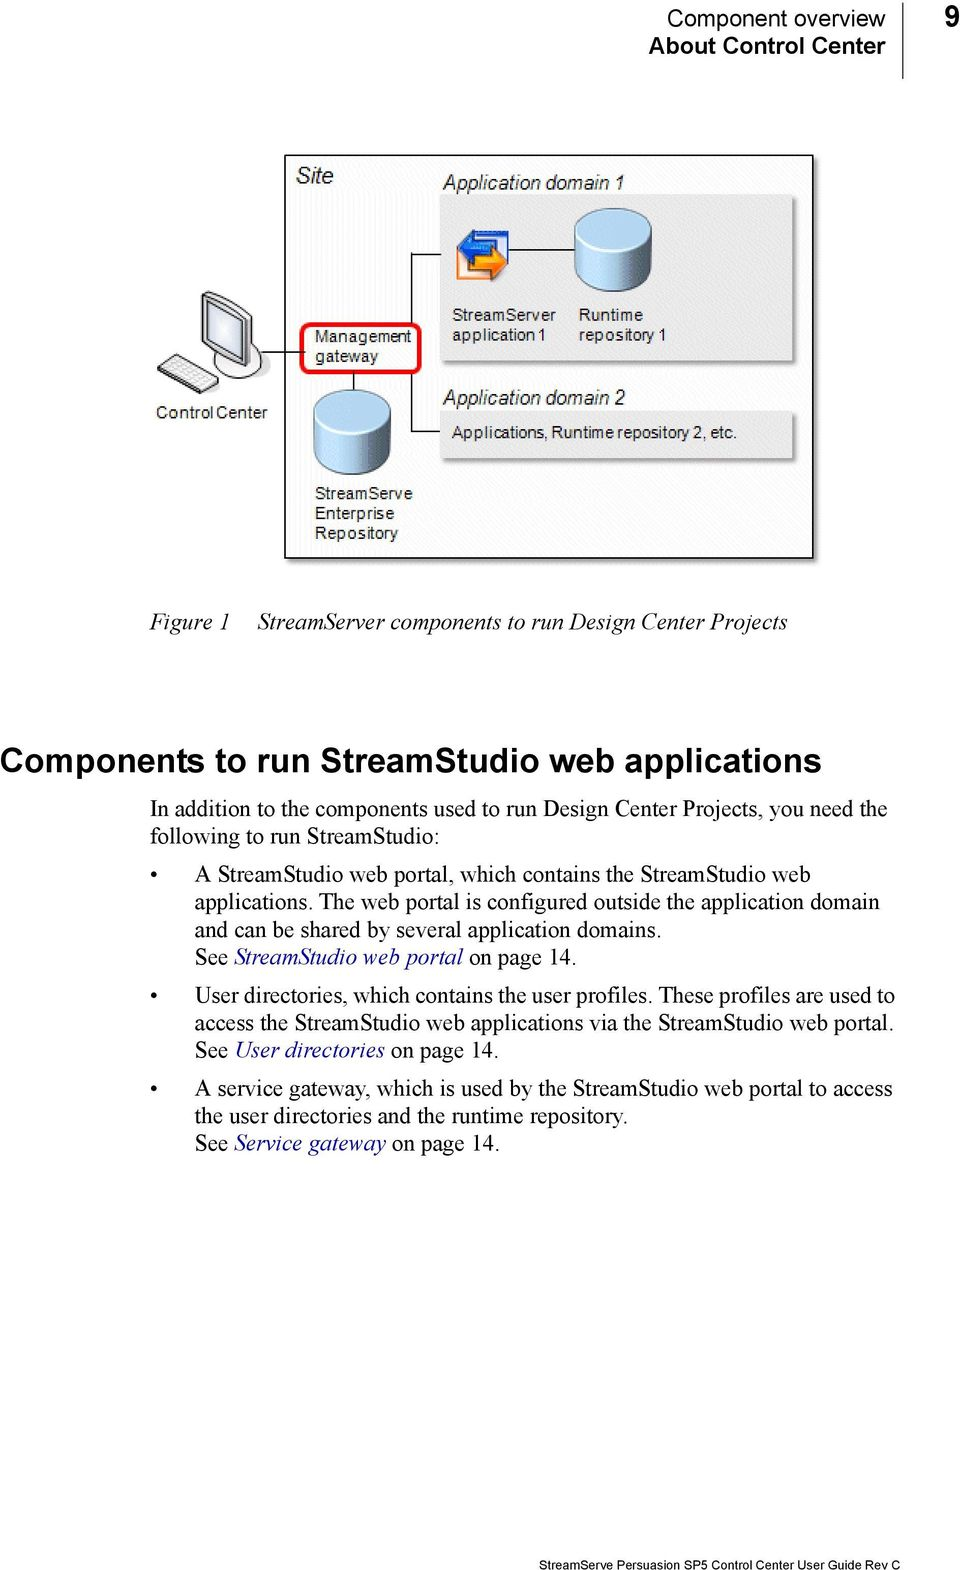 The web portal is configured outside the application domain and can be shared by several application domains. See StreamStudio web portal on page 14.